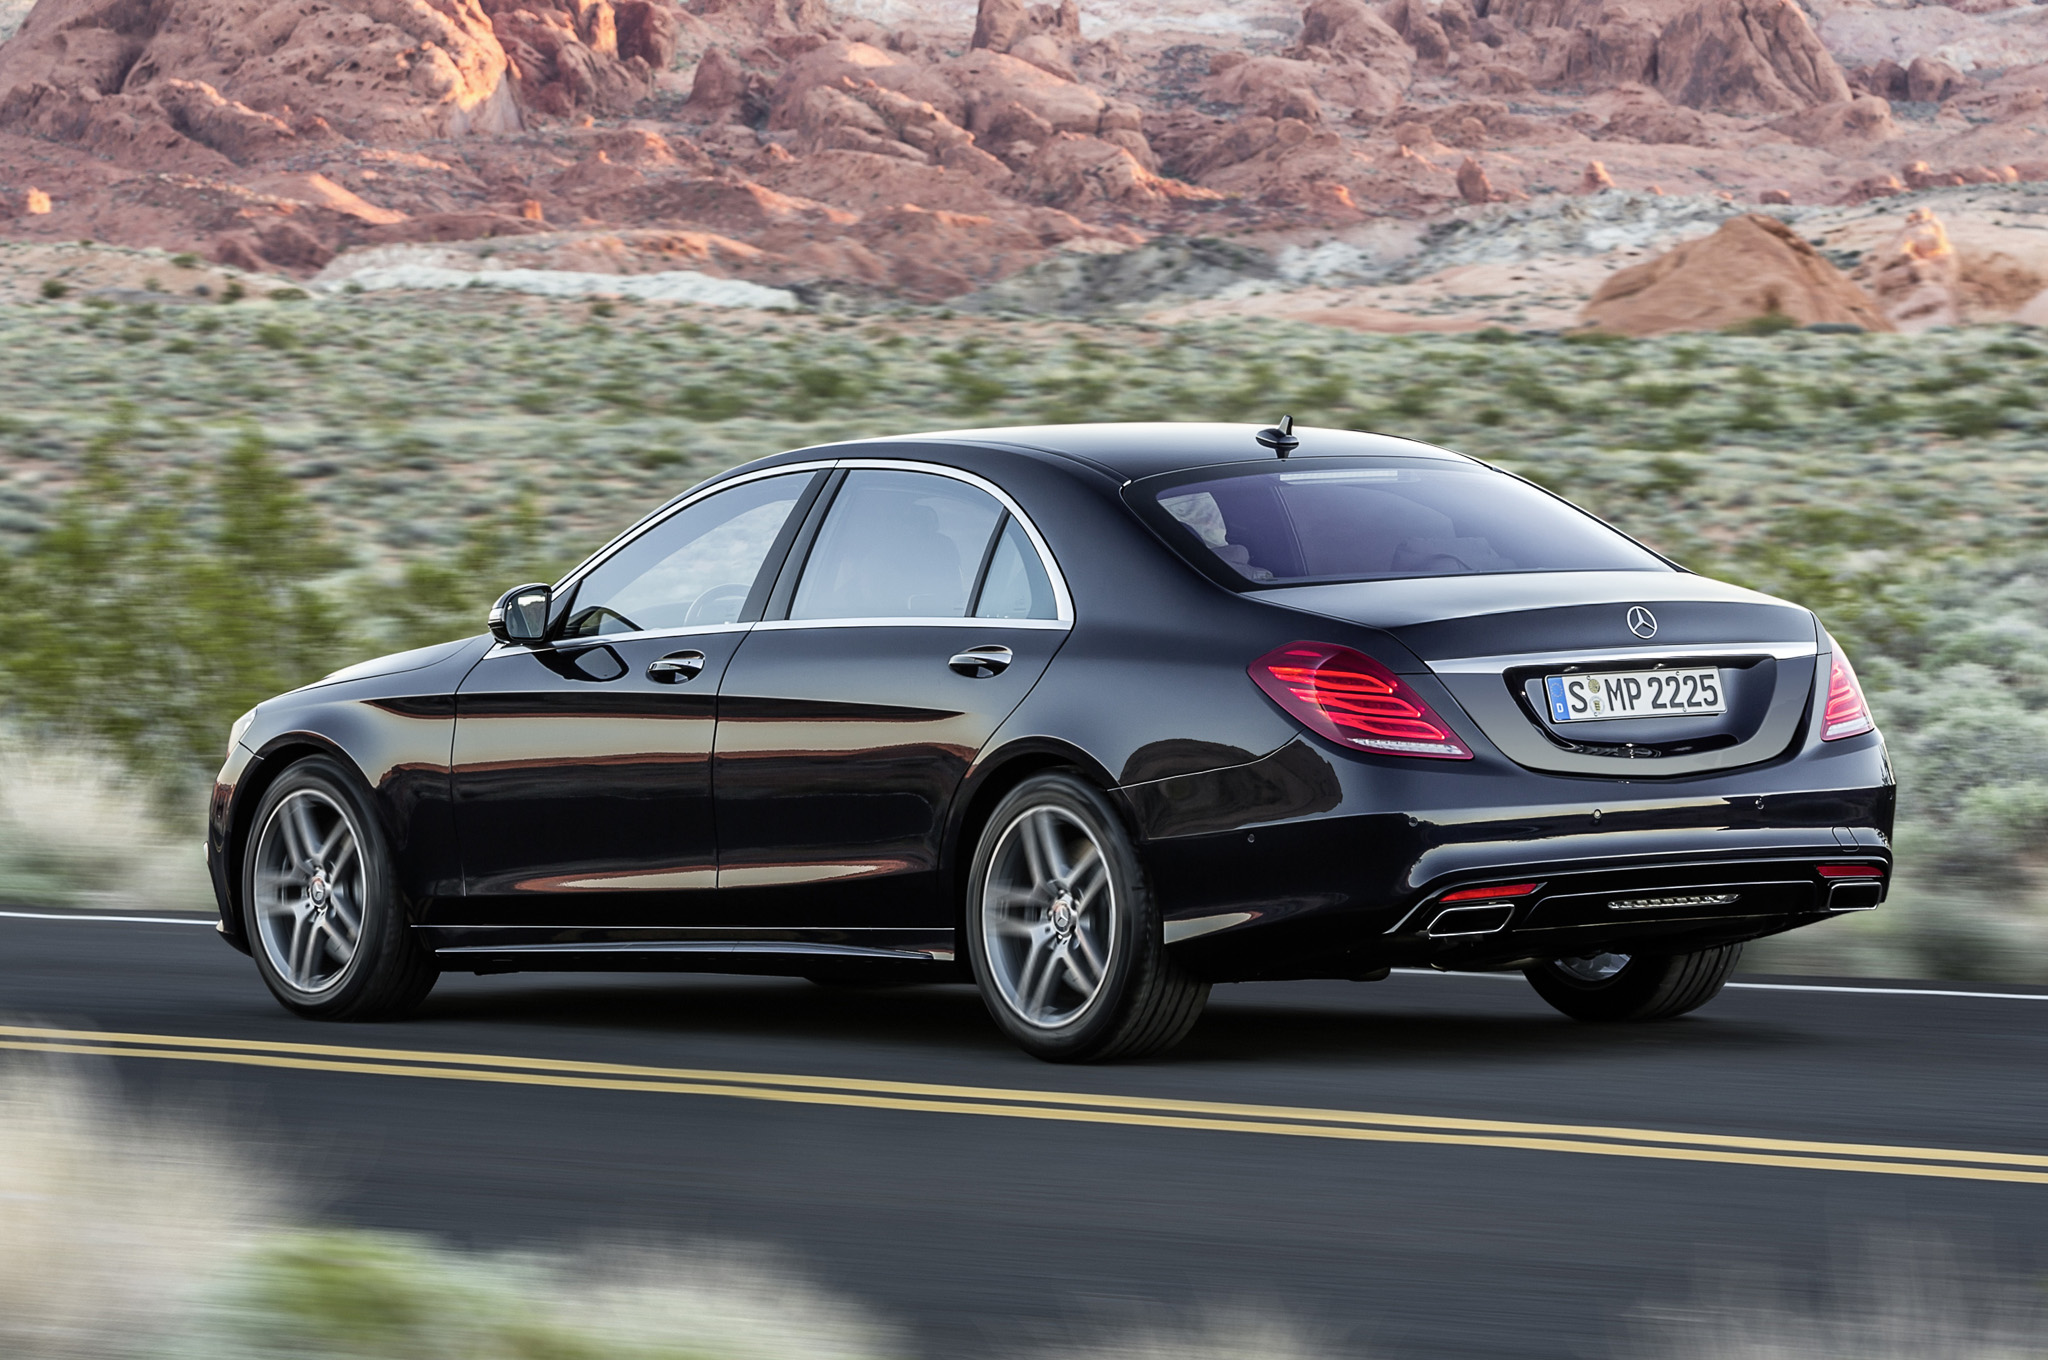 2014-mercedes-s550-rear-three-quarters.jpg